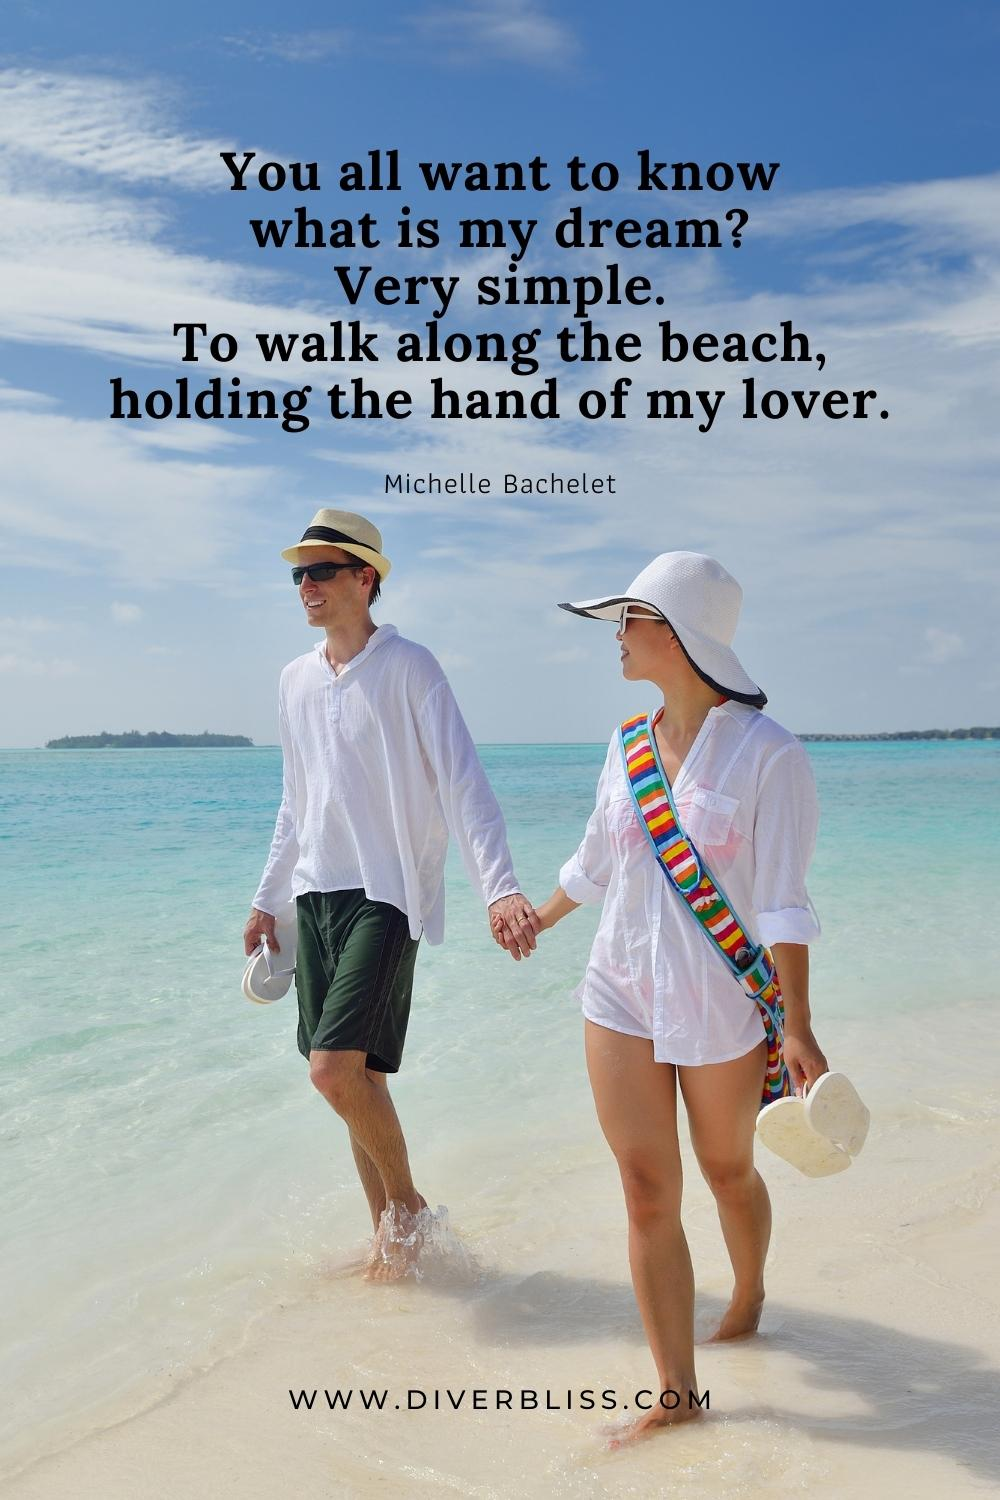 """""""You all want to know what is my dream? Very simple. To walk along the beach, holding the hand of my lover."""" —Michelle Bachelet"""